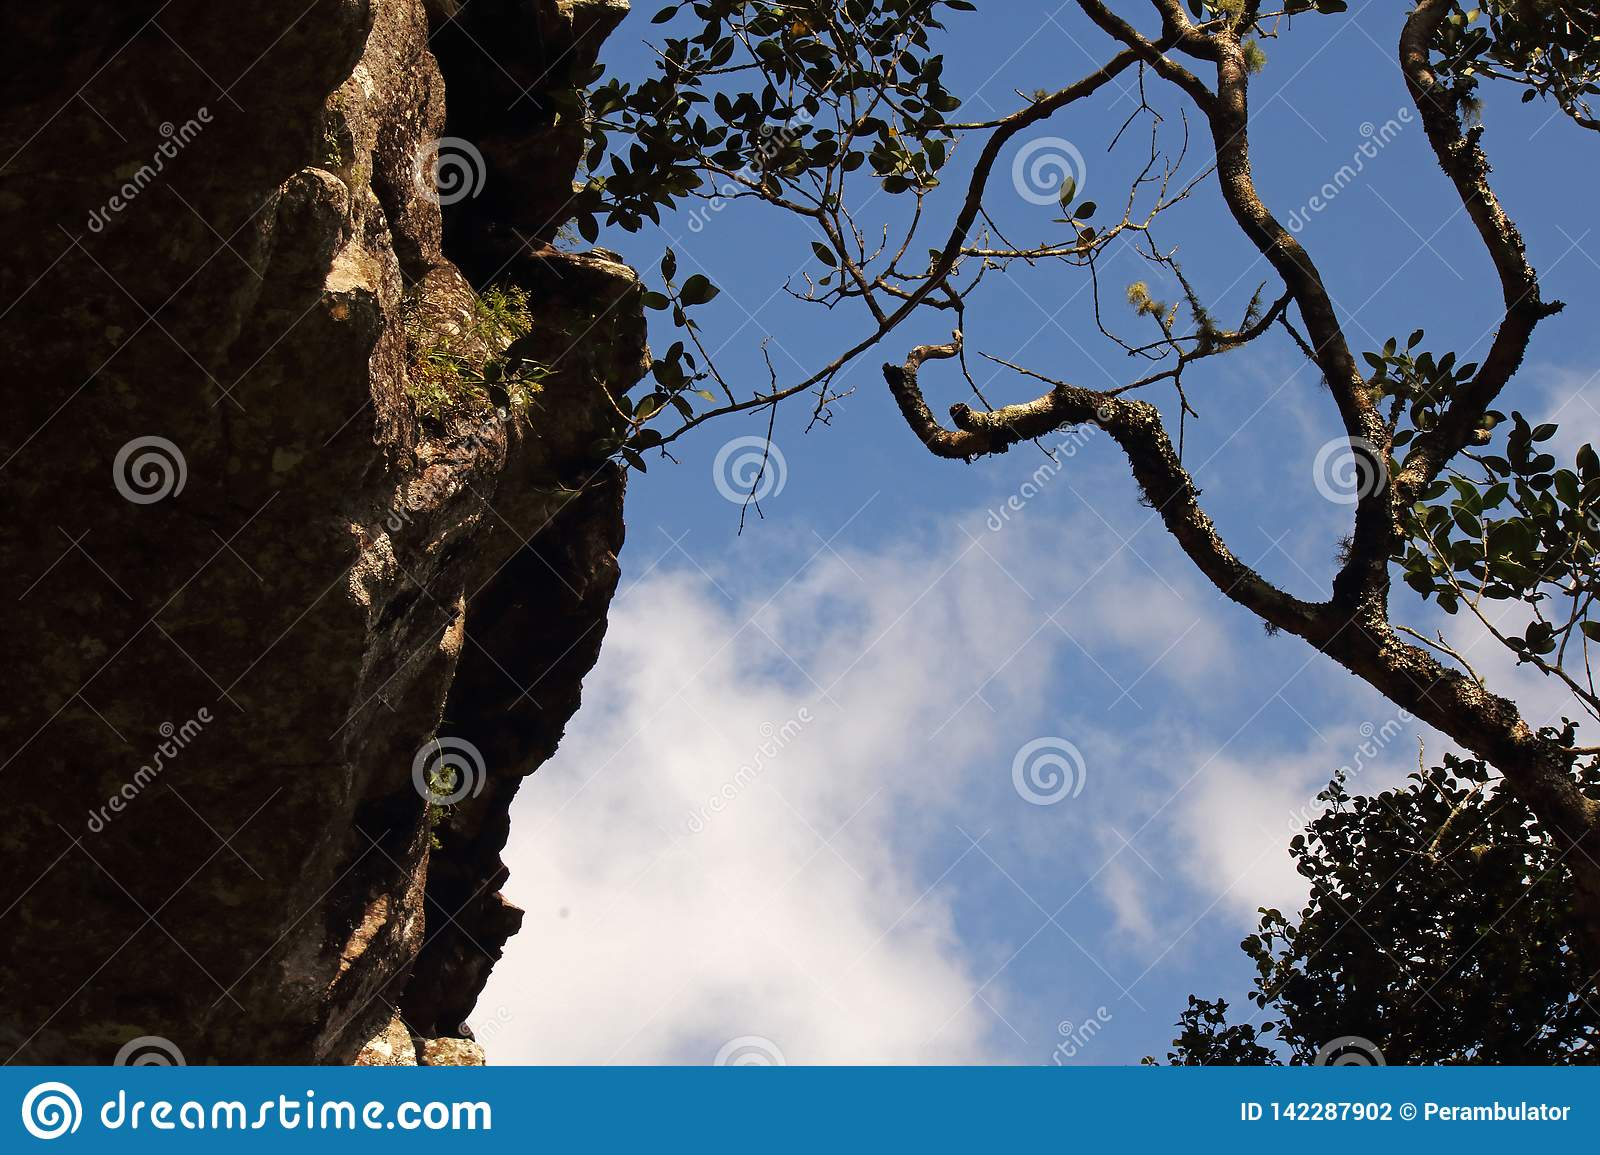 Upward View Of Rock Shelf And Tree Branch Stock Photo Image Of Background Contrasting 142287902